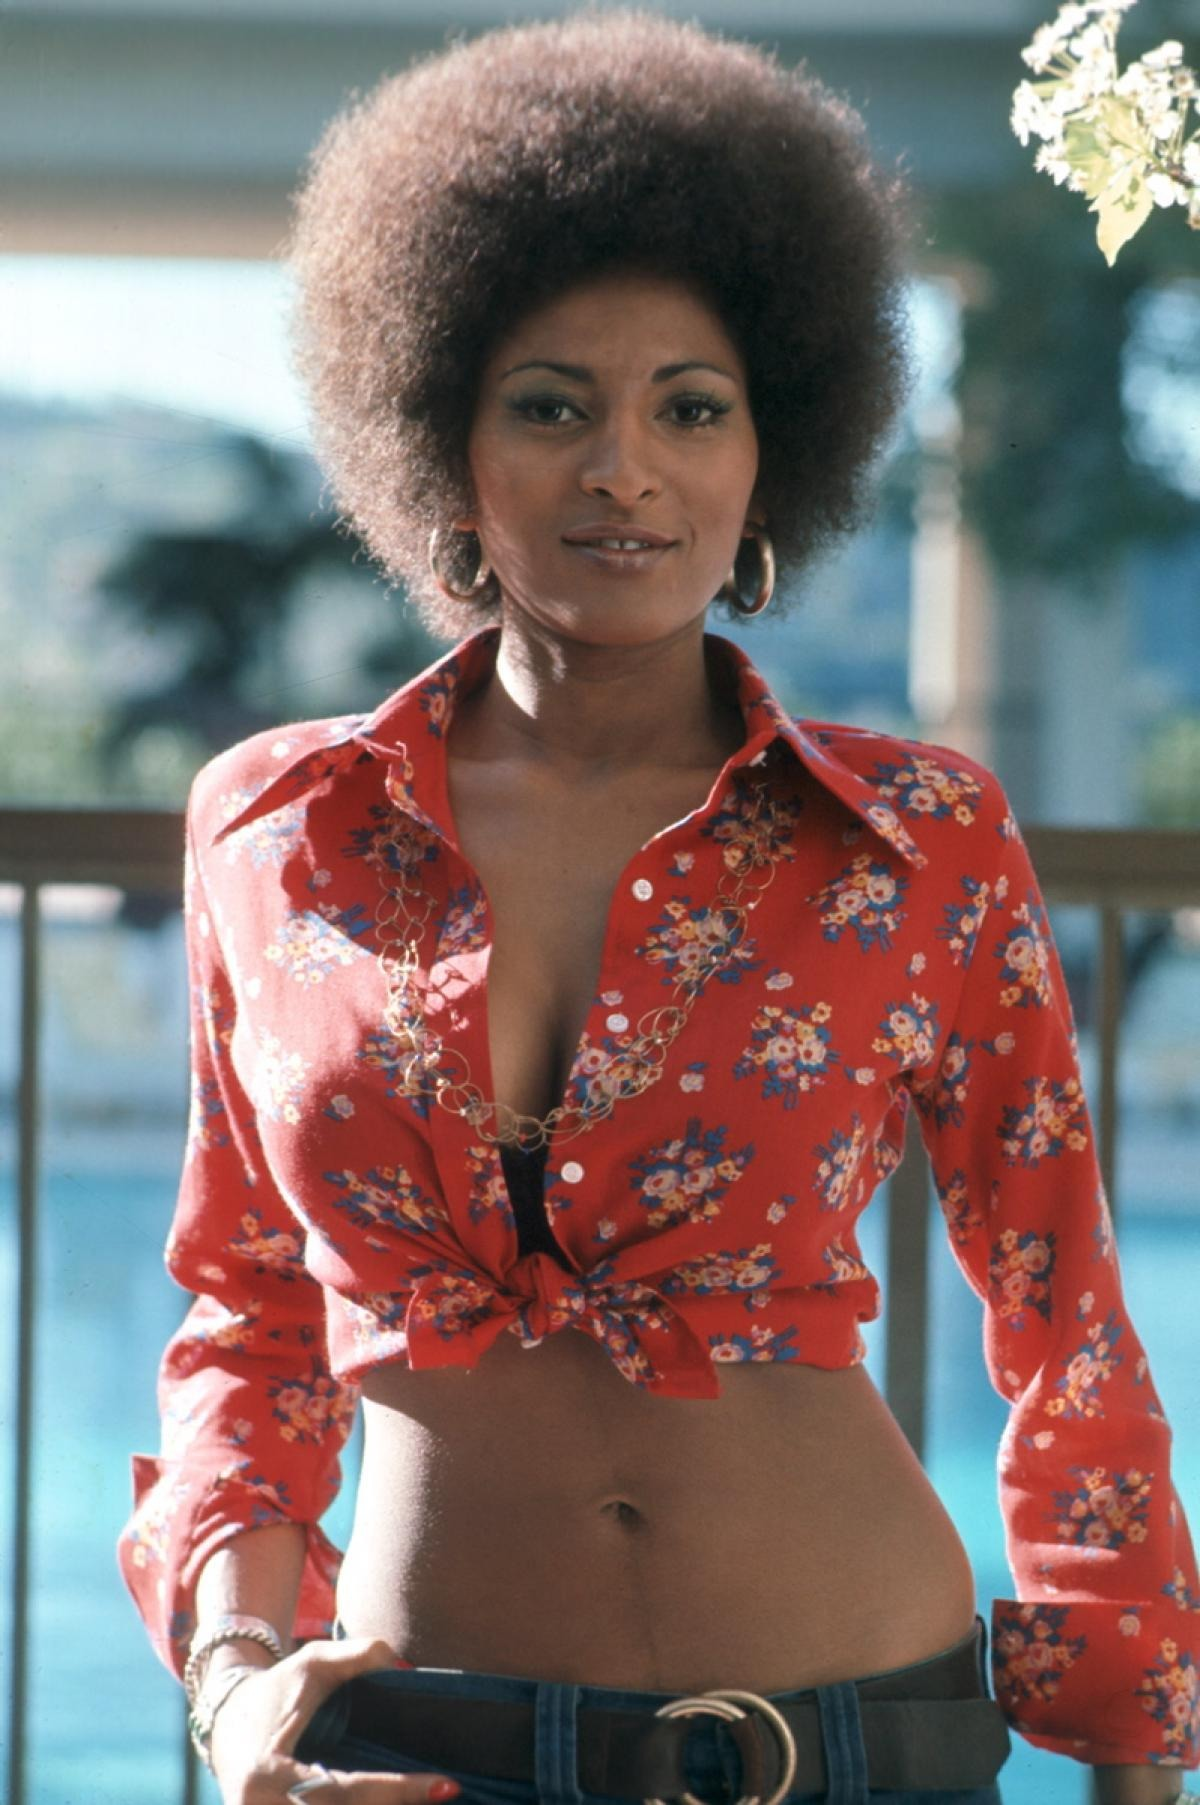 Pam Grier in floral print crop shirt. She looks hot and stunning. She is known for her work in several movies including Foxy Brown.